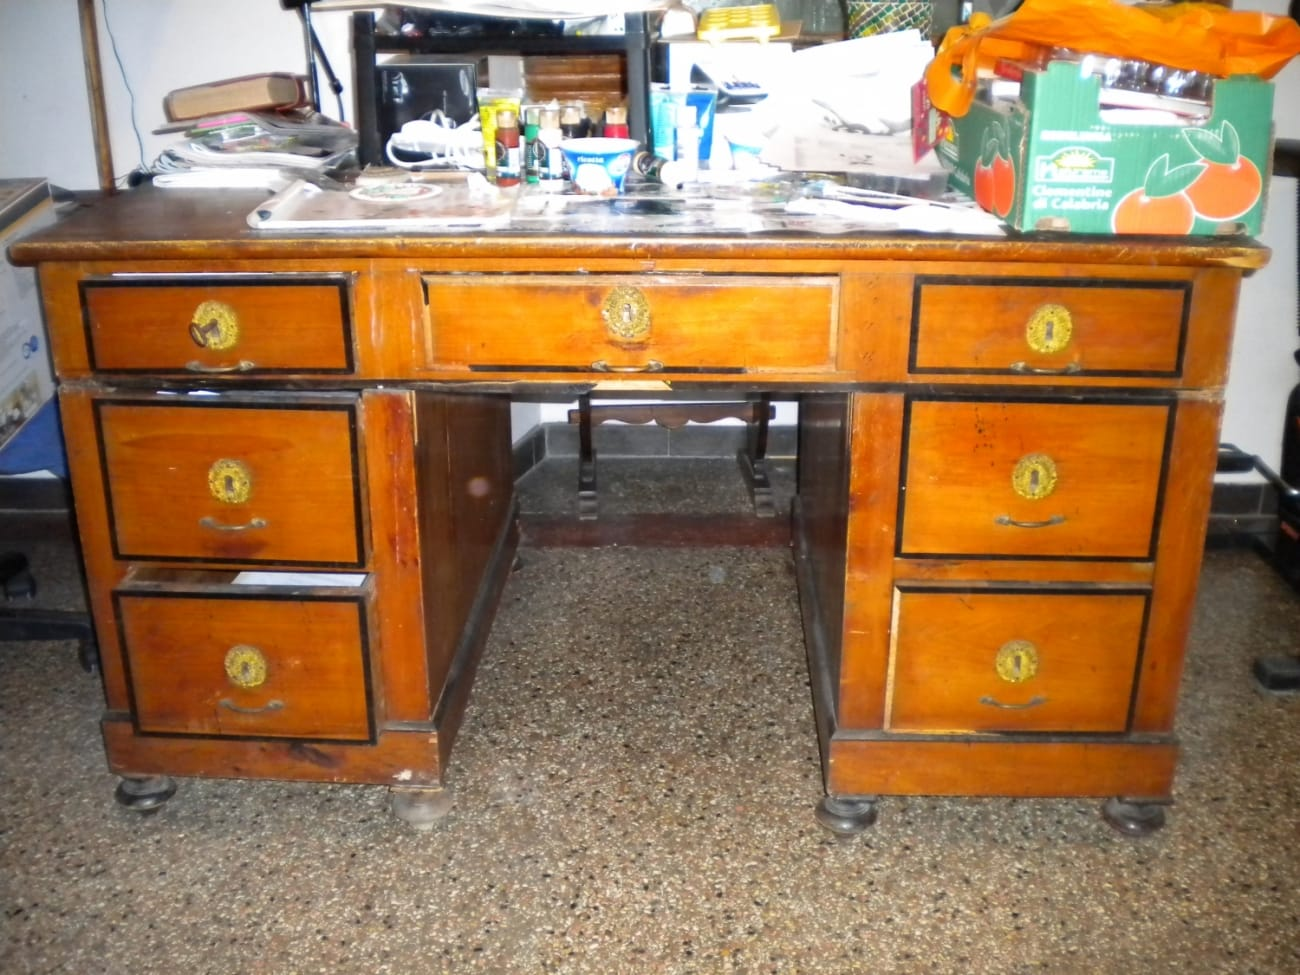 Desk Jane Harman storage and furniture restoration in Florence